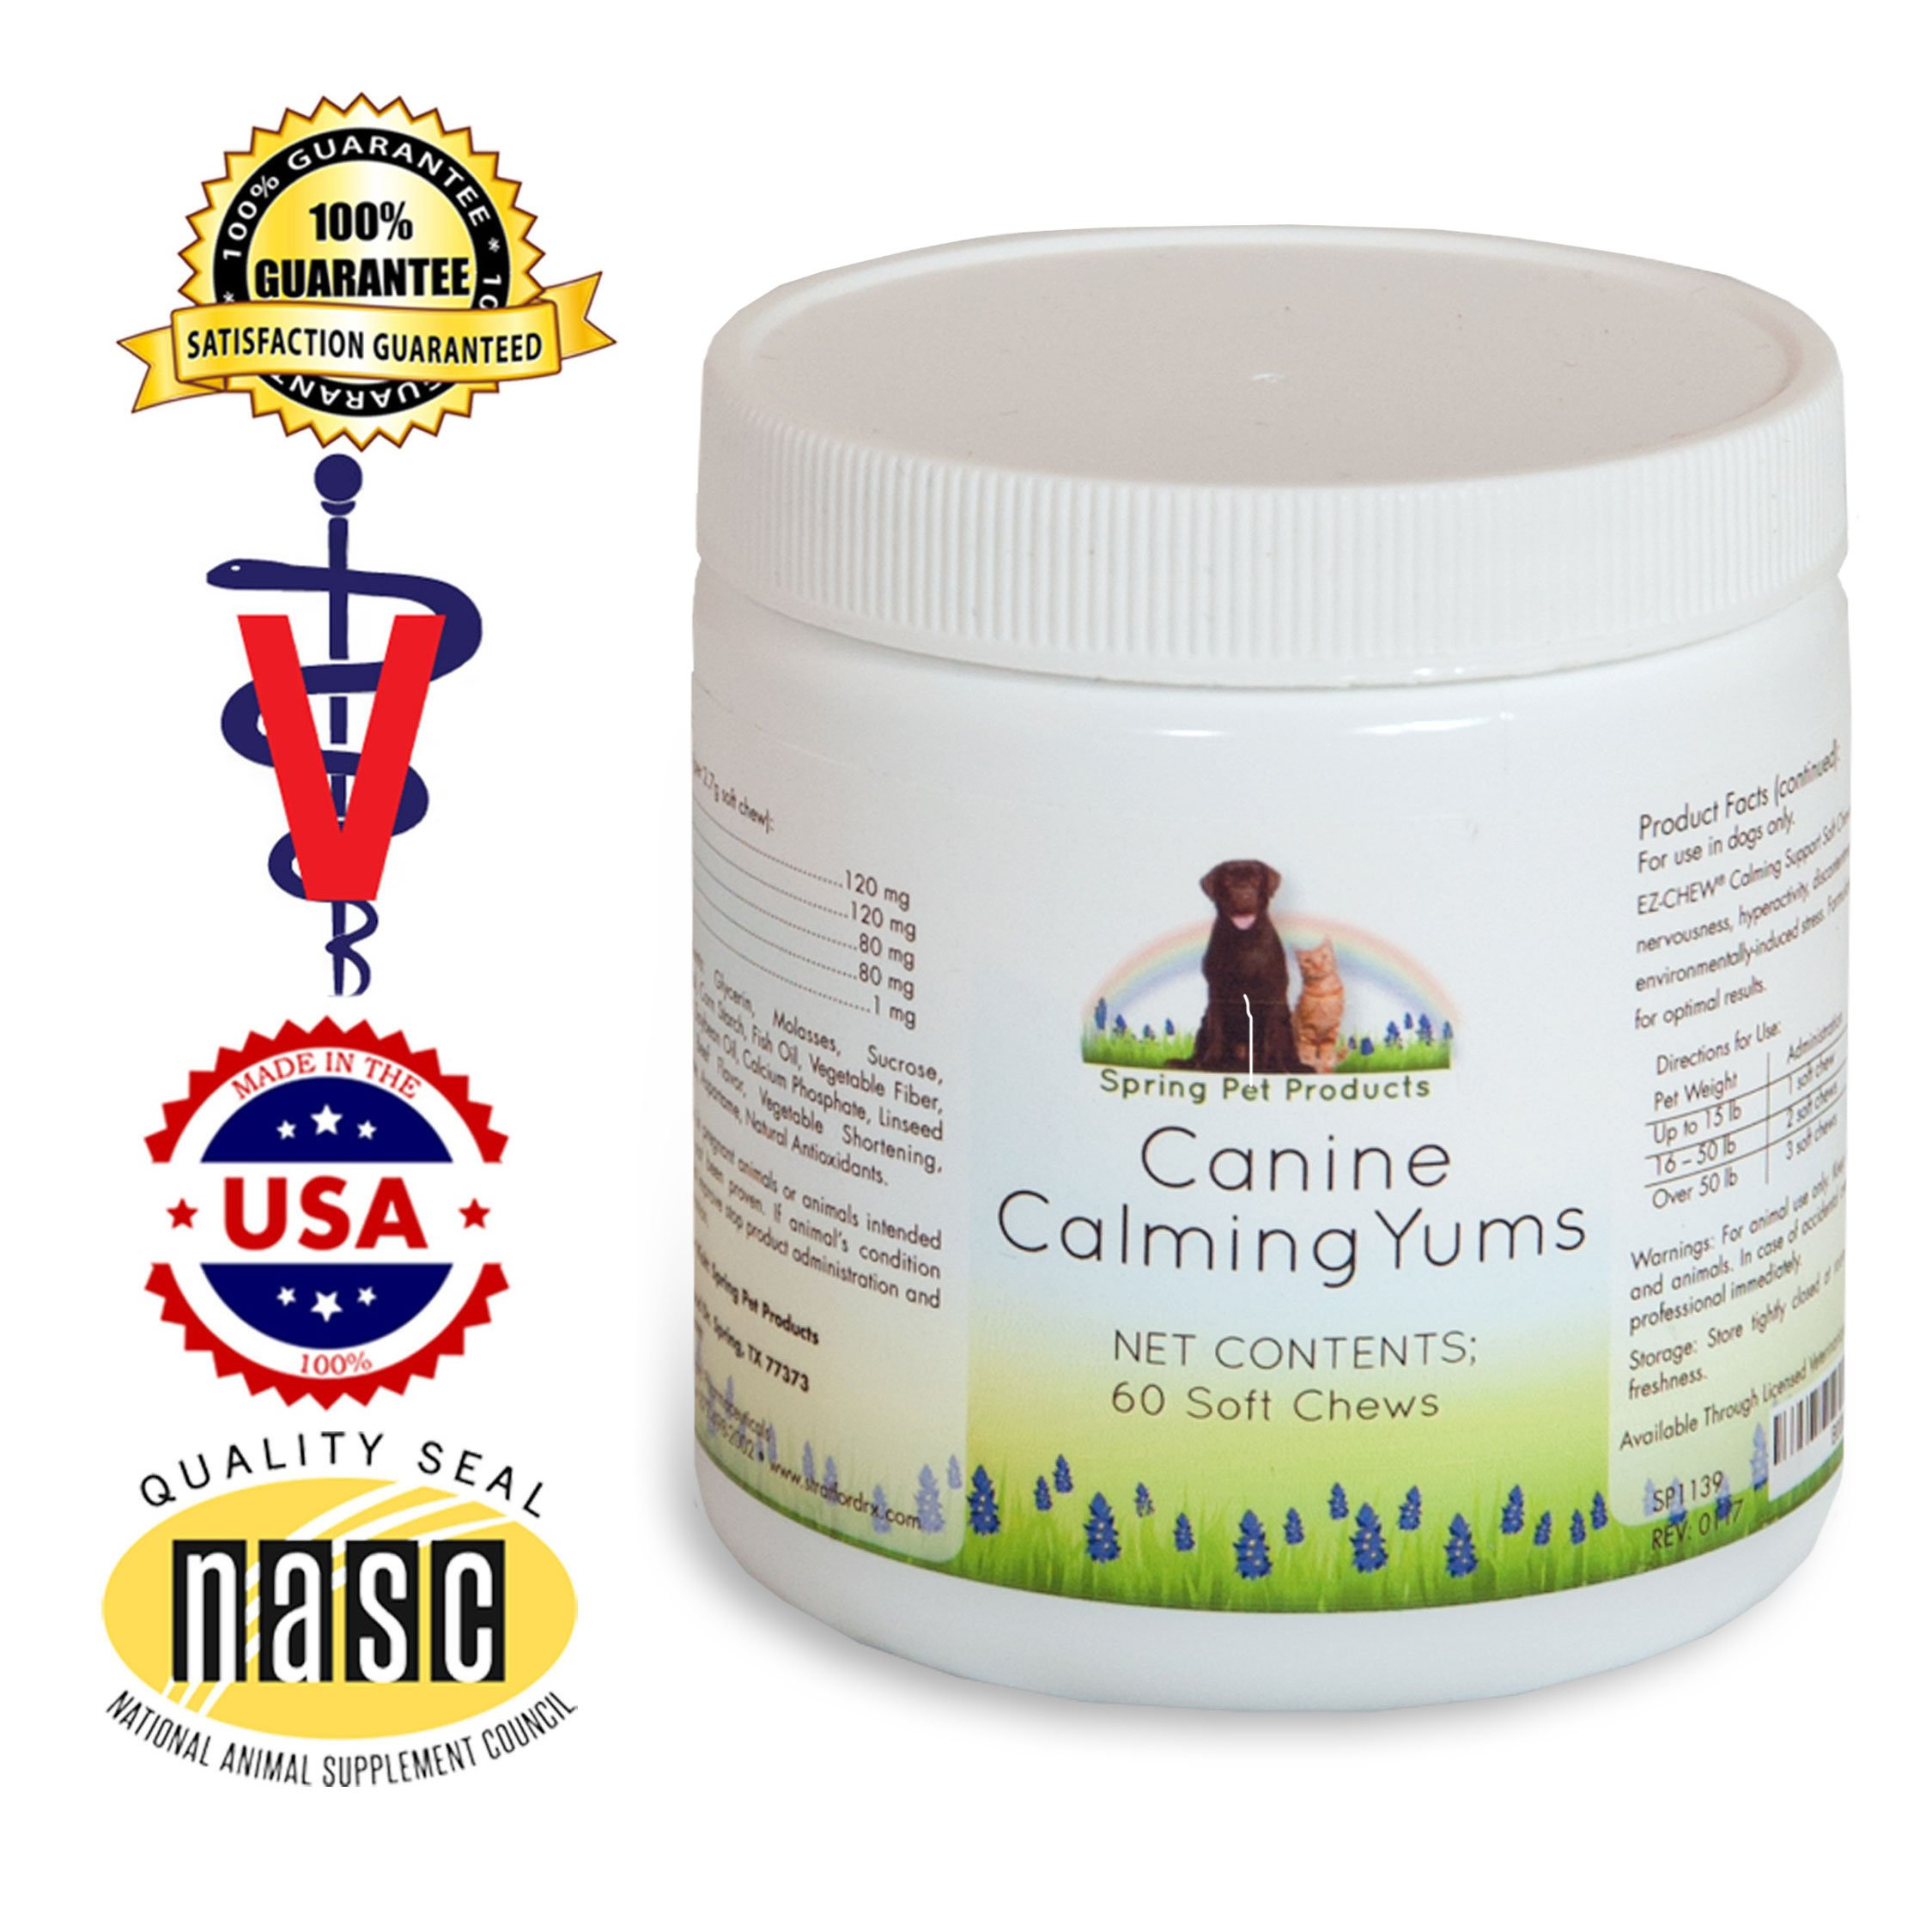 Spring Pet Calming Yums With Melatonin 60 Count ~ High Potency Natural Veterinary Formula to Help Reduce Anxiety and Stress in Dogs and Puppies ~ Soft, Tasty Beef Flavored Treat Made in USA